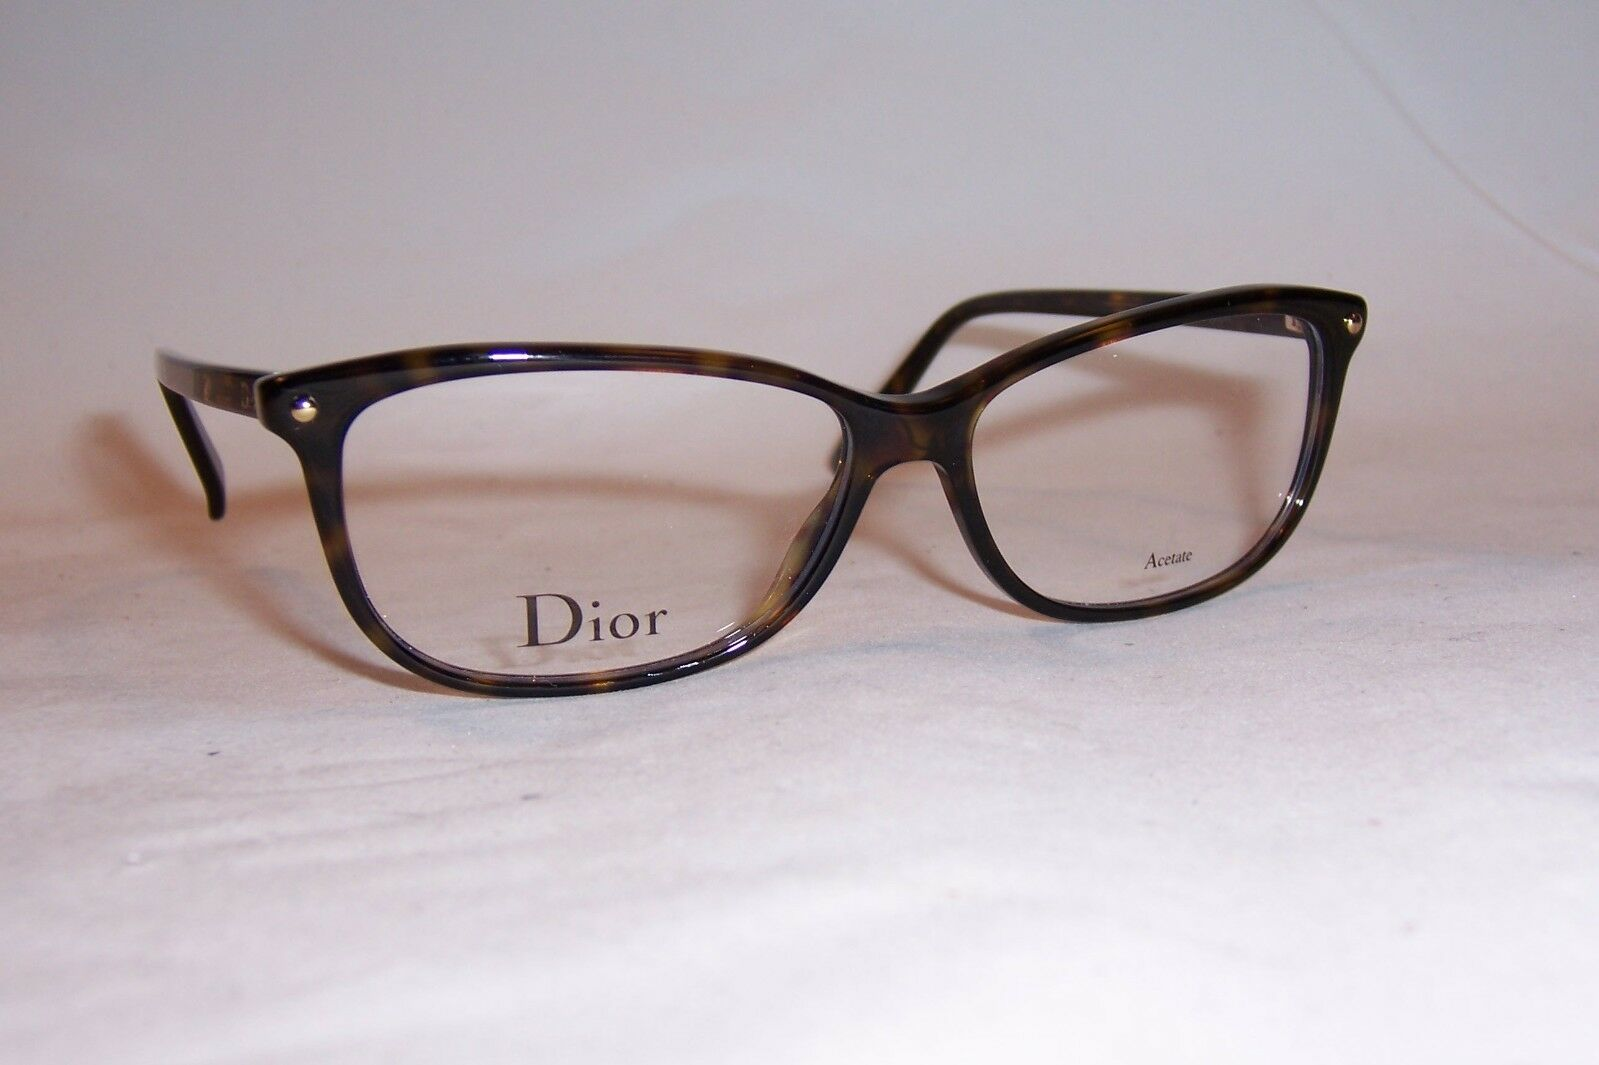 0d5e8d5bdab Christian Dior Women s Eyewear Frames CD 3271 53mm Dark Havana 86 ...